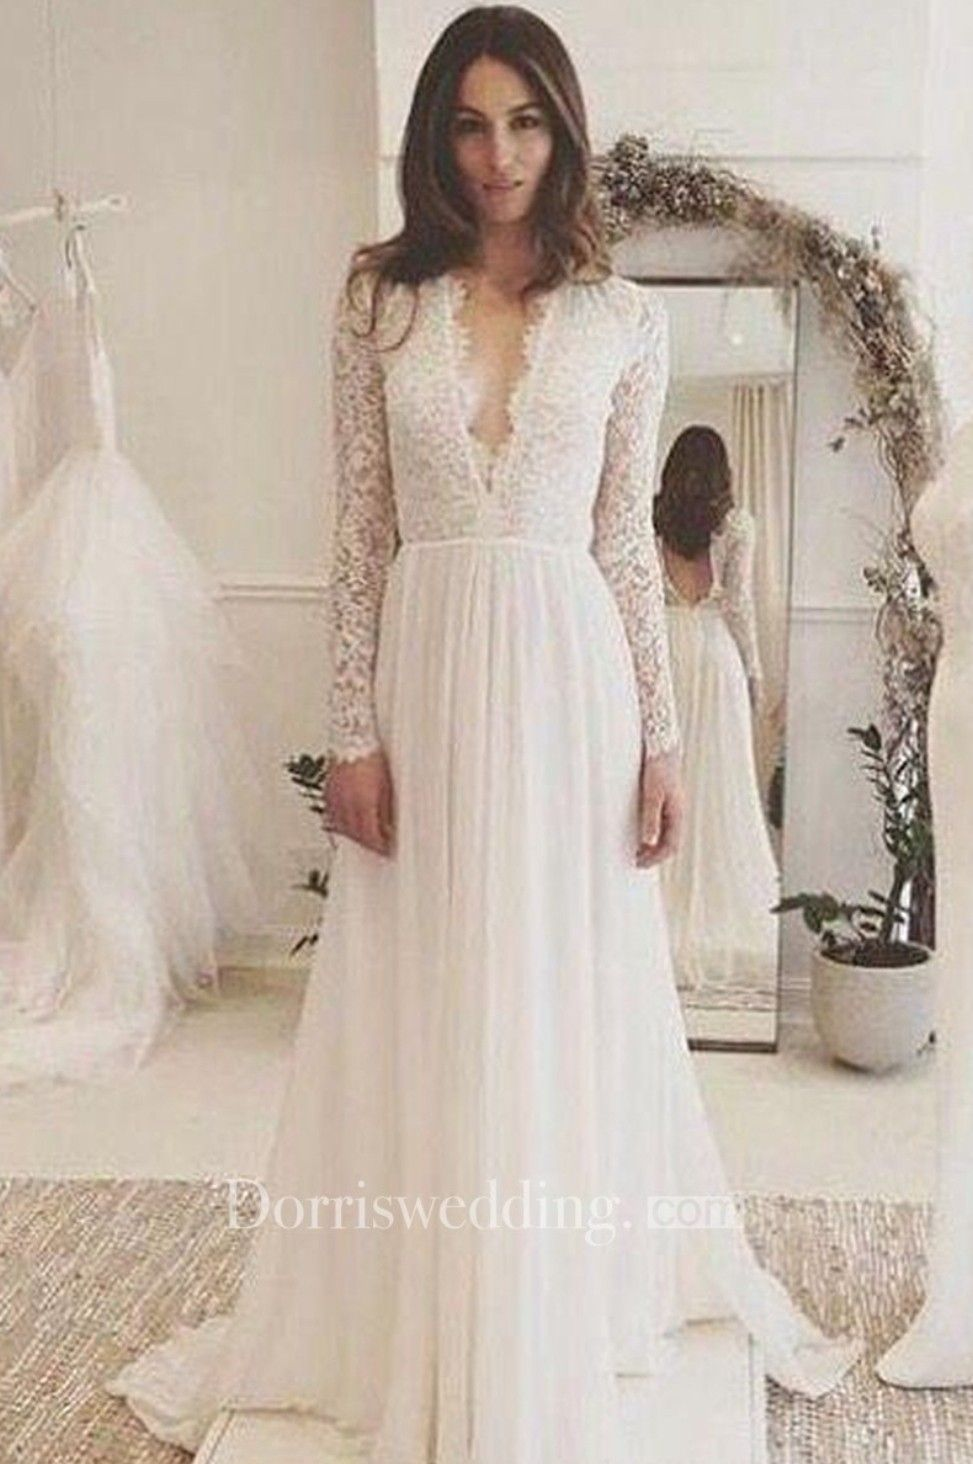 Wedding dresses with long sleeves  Vneck Long Sleeves Backless Ivory Chiffon Wedding Dress with Lace